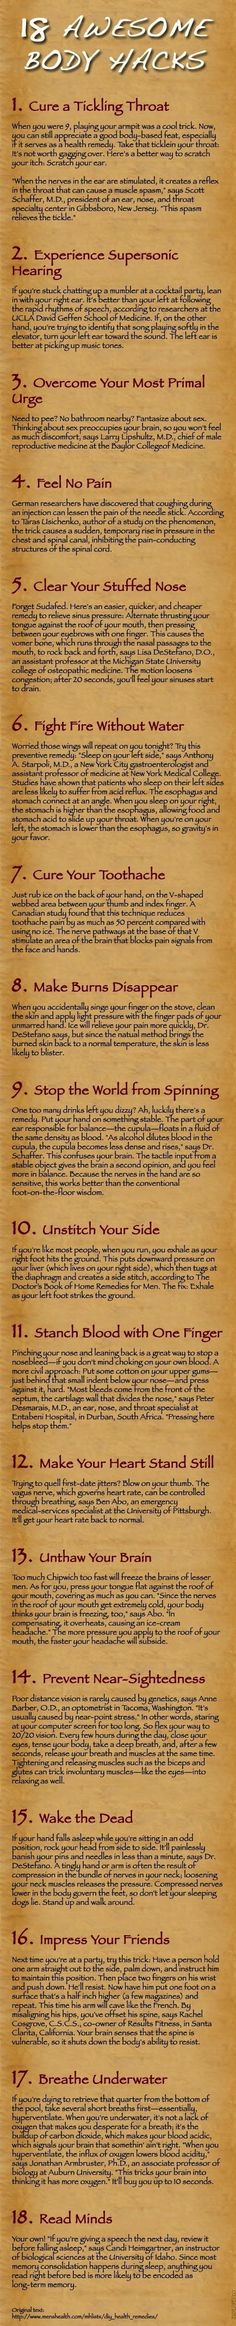 """Body Hacks - How to """"cure"""" typical daily problems"""